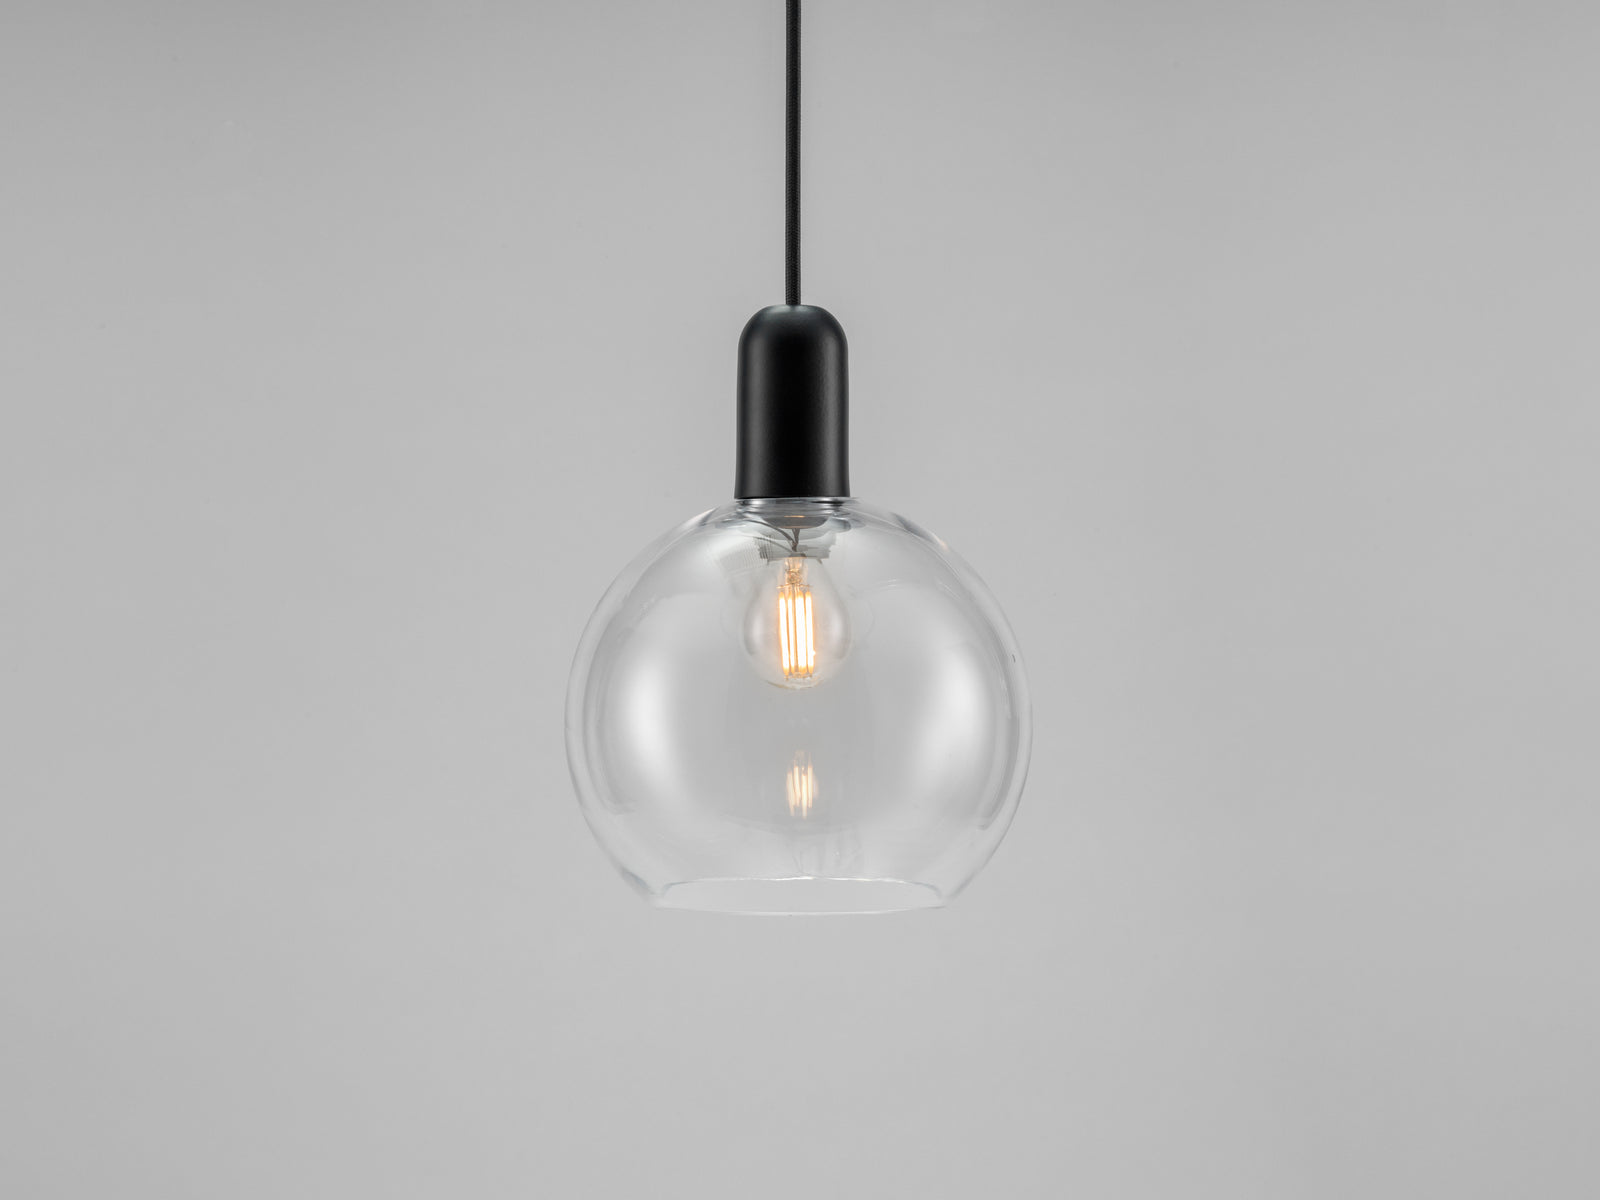 Ses led 2w bulb | light | houseof.com